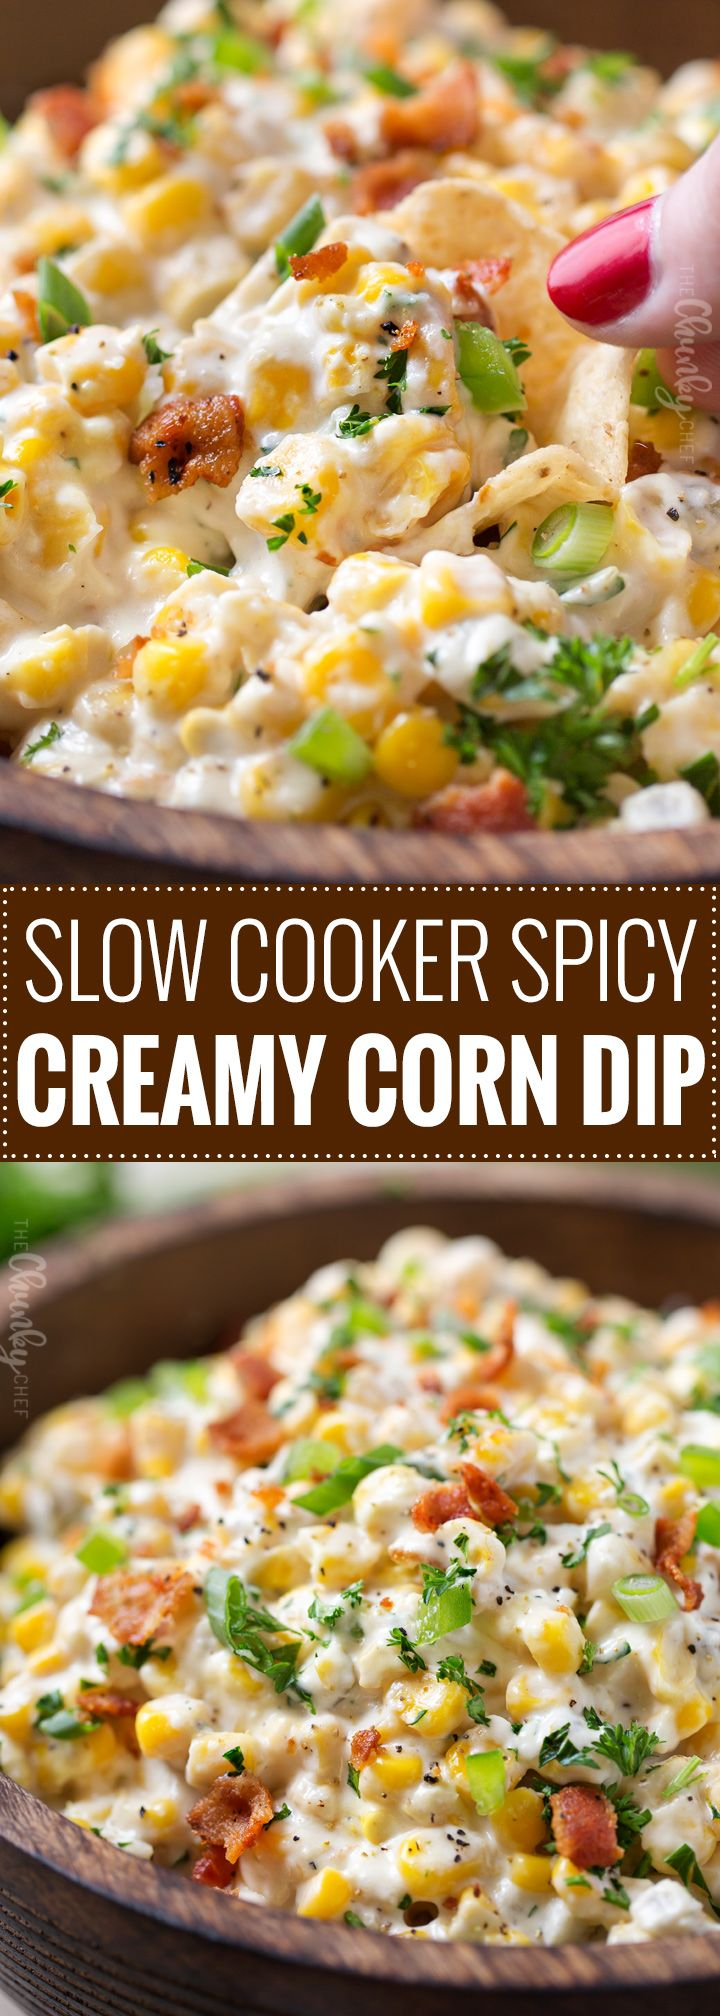 Slow Cooker Spicy Creamy Corn Dip | The easiest, creamy corn dip ever! Toss the ingredients in the slow cooker and be amazed at how mouthwatering it tastes! | #corndip #slowcooker #crockpot #appetizerrecipe #partyfood